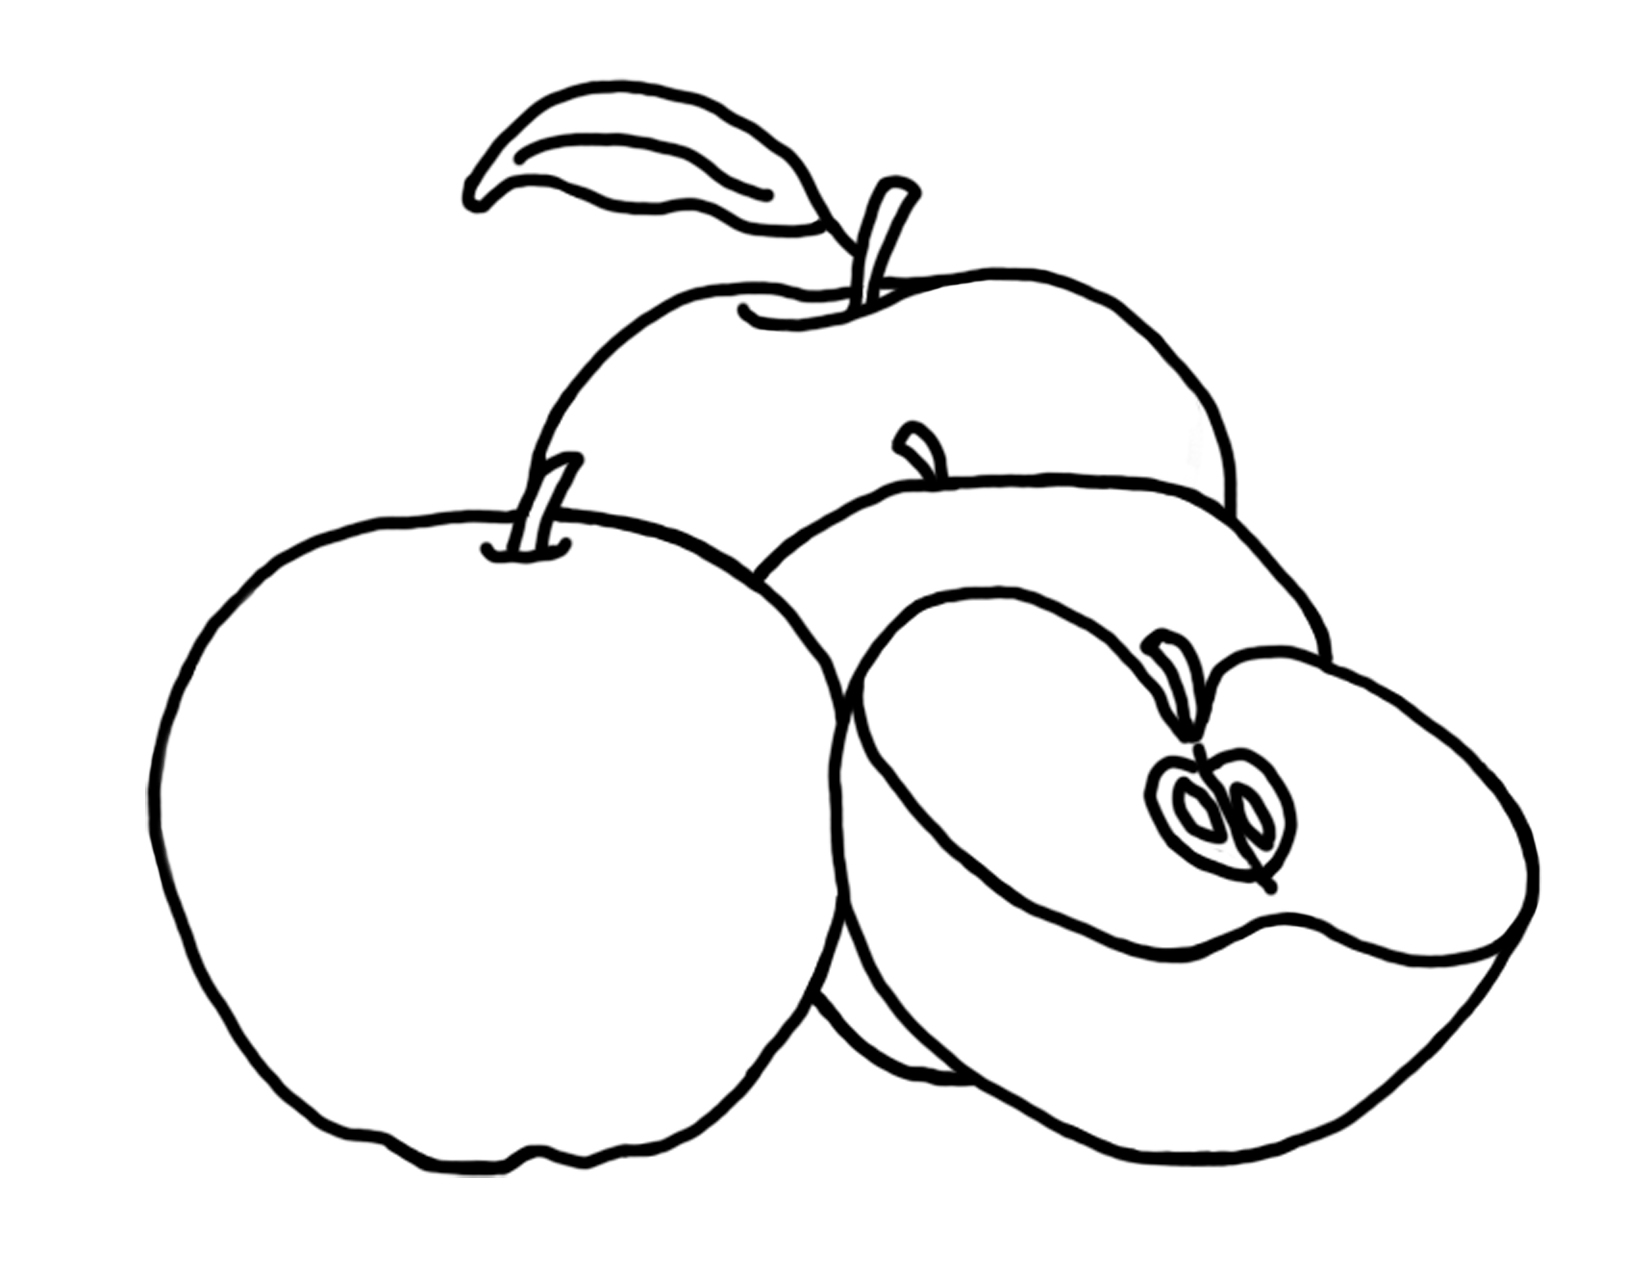 a apple coloring pages - photo #20